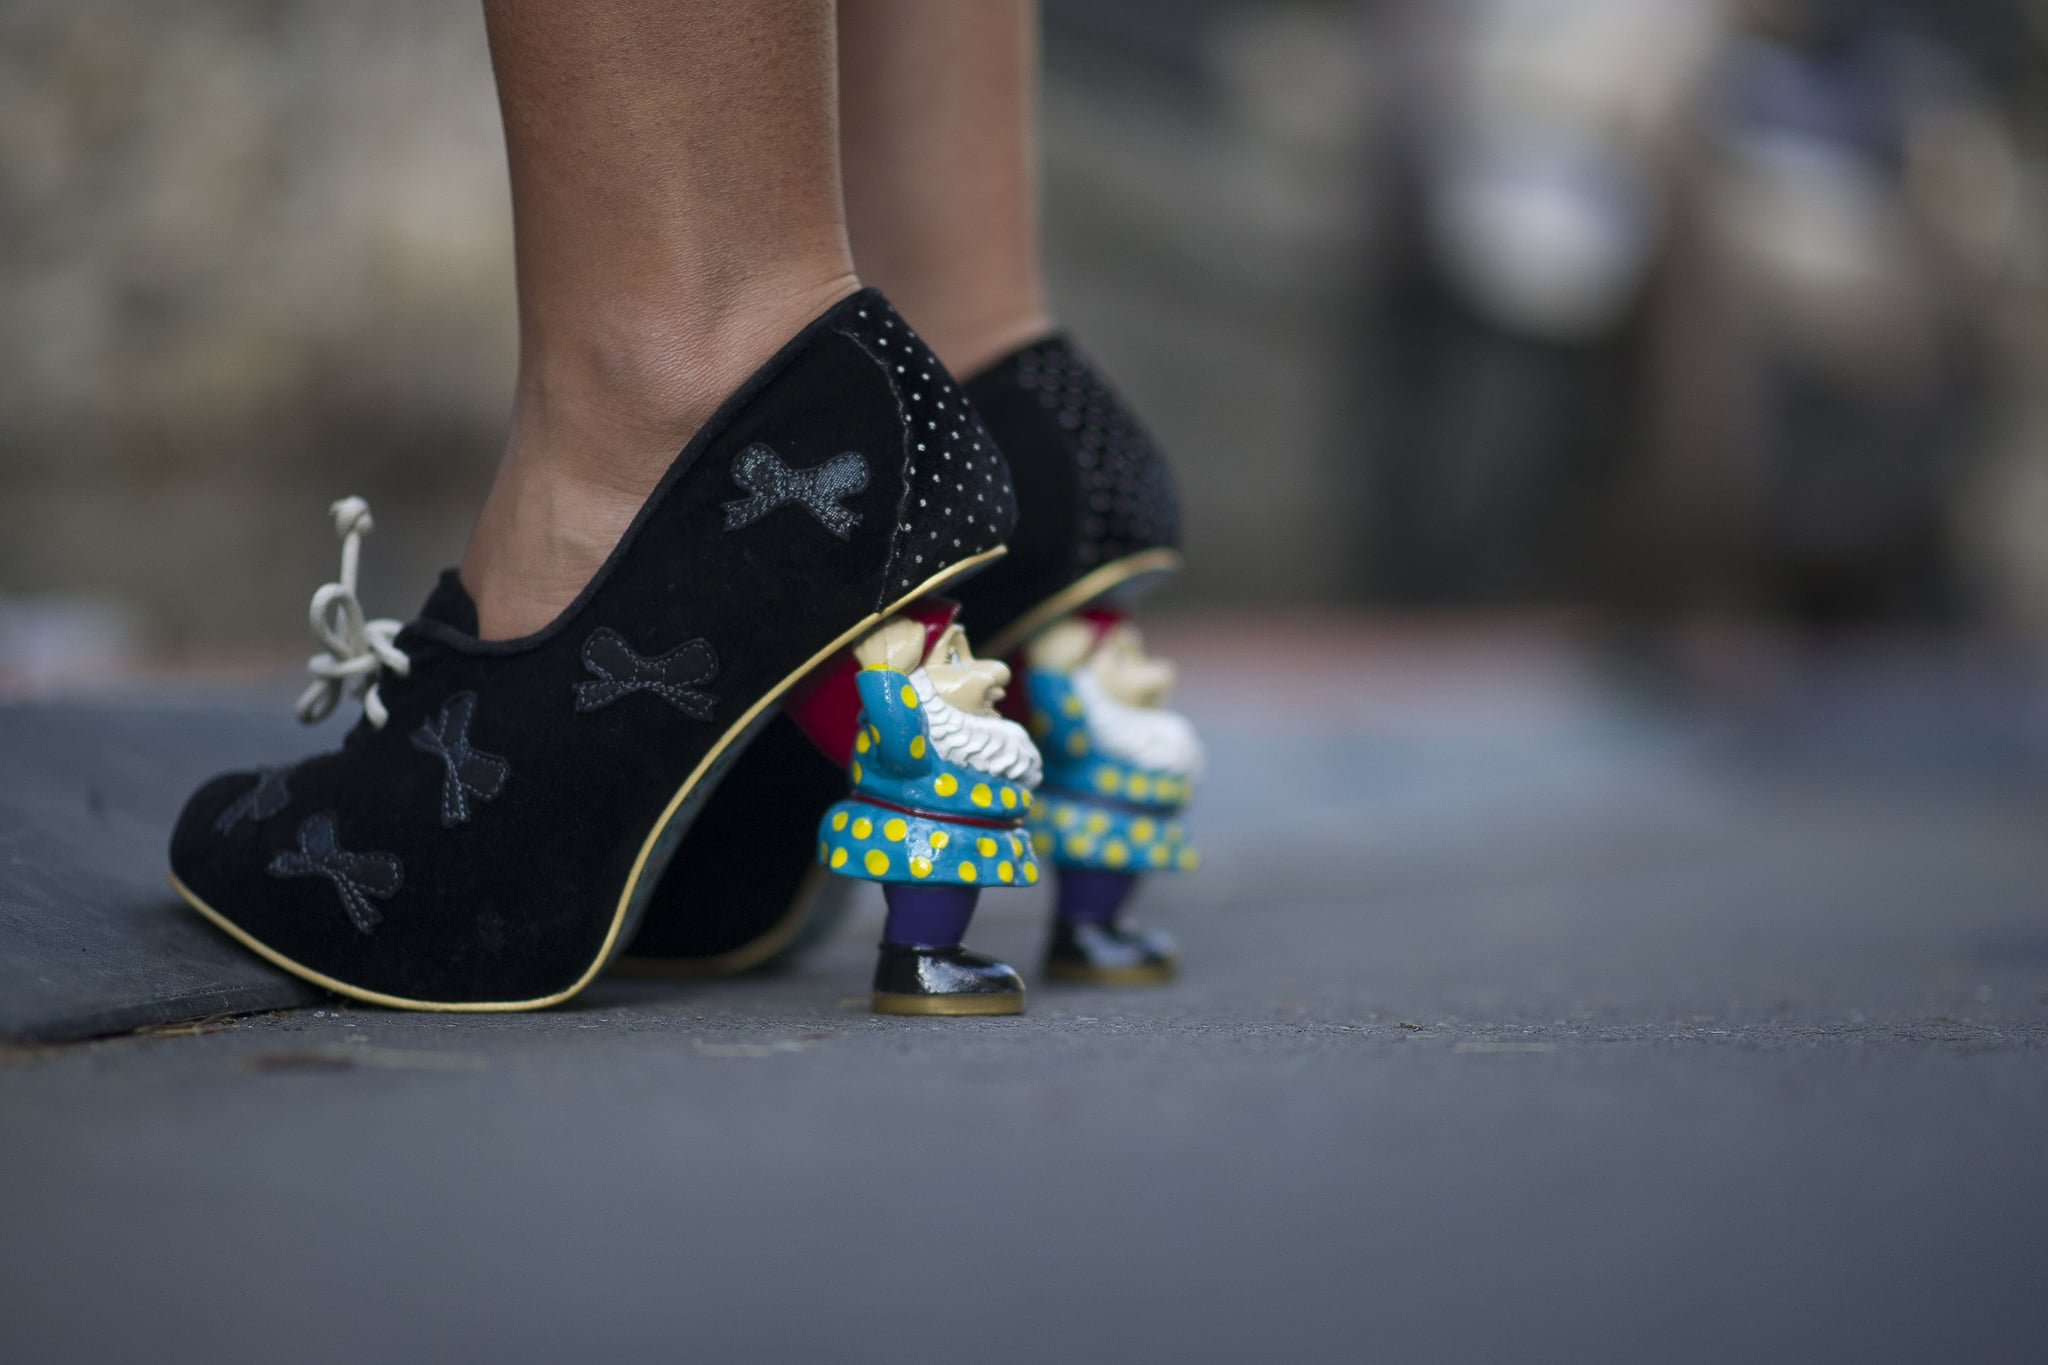 The quirkiest, most adorable shoes ever? We think so.